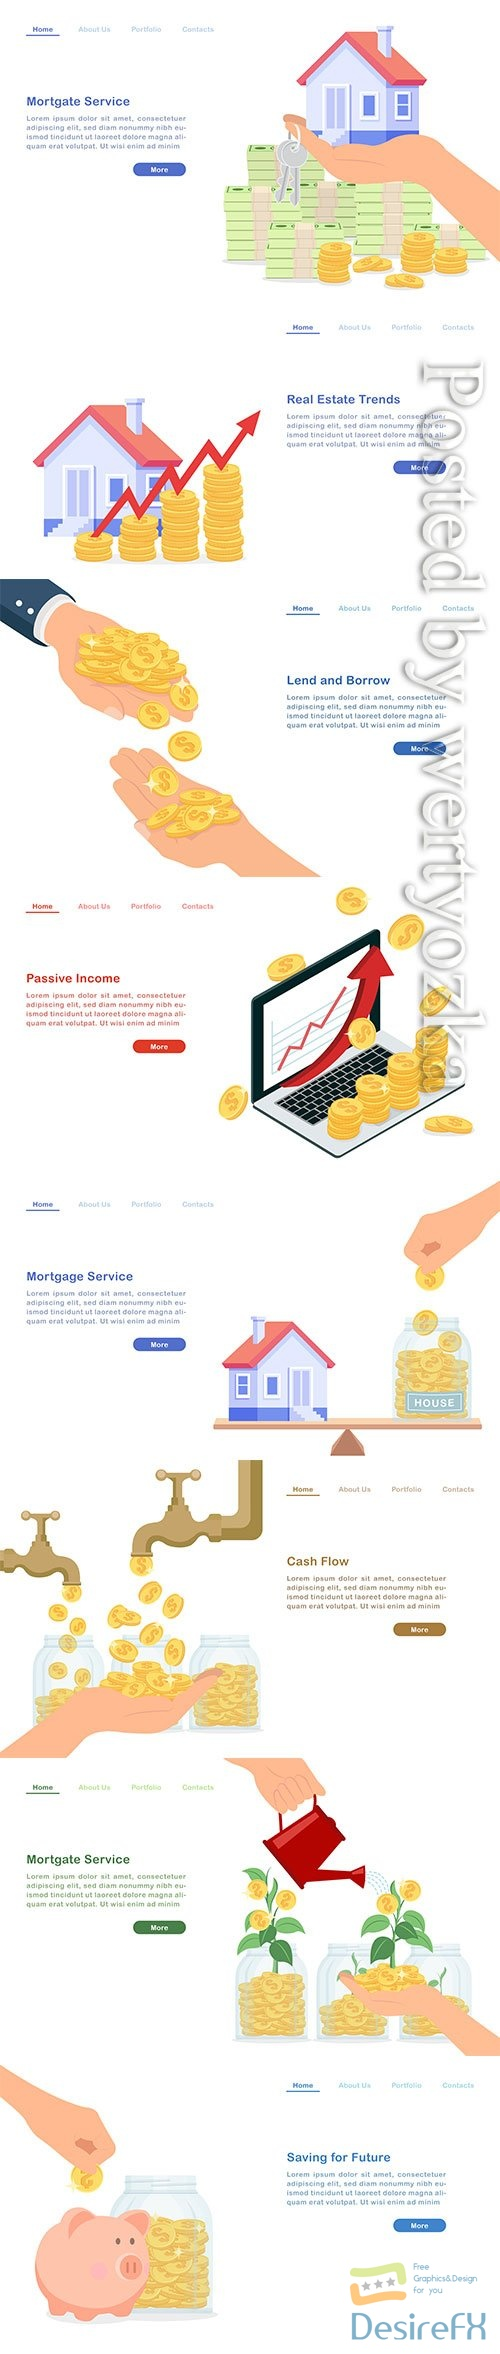 Landing page lend and borrow money concept golden coins